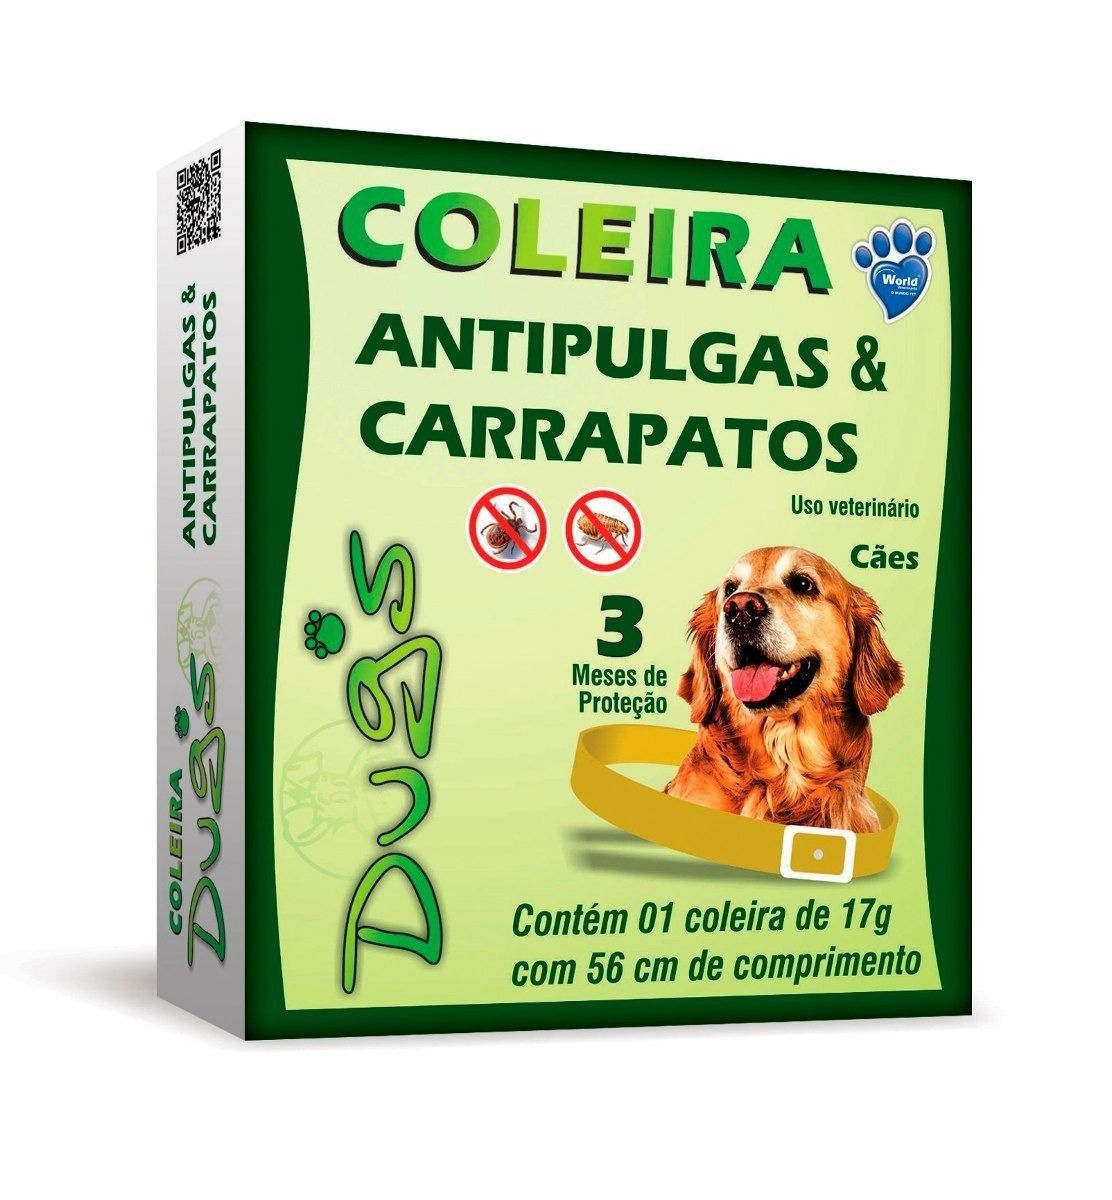 COLEIRA ANTI-PULGA E CARRAPATOS DUG'S